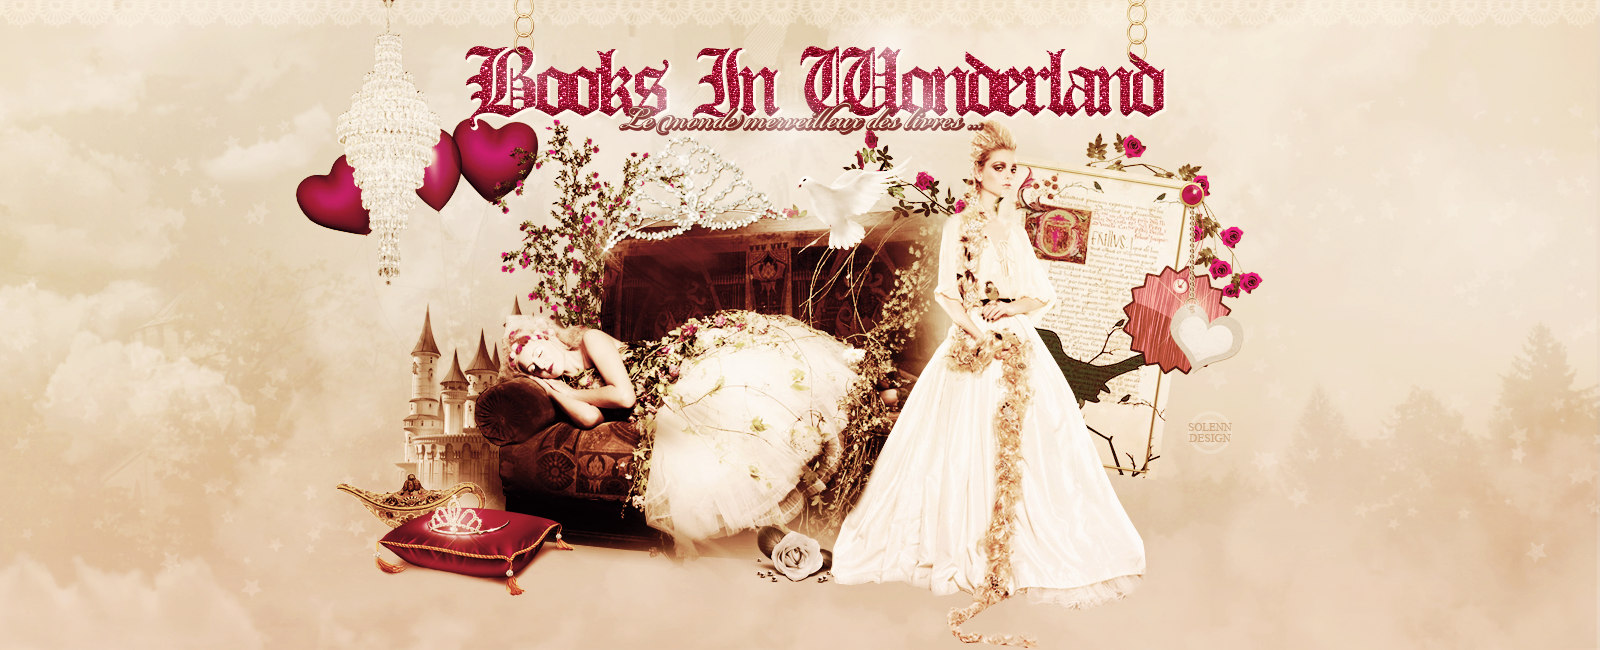 ♣ Books In Wonderland ♣ Forum Index